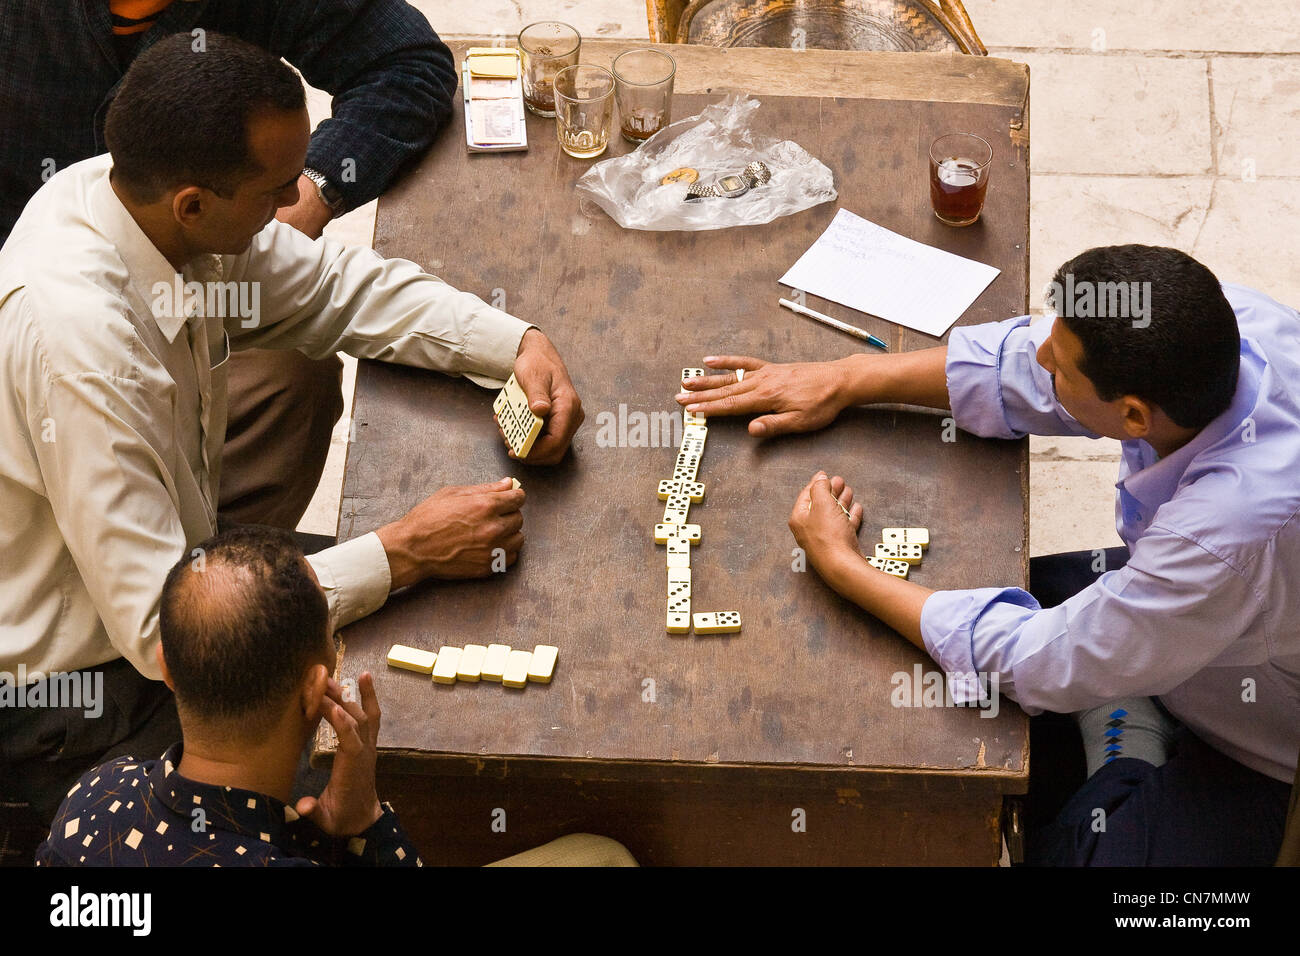 Egypt, Cairo, dominoes players - Stock Image